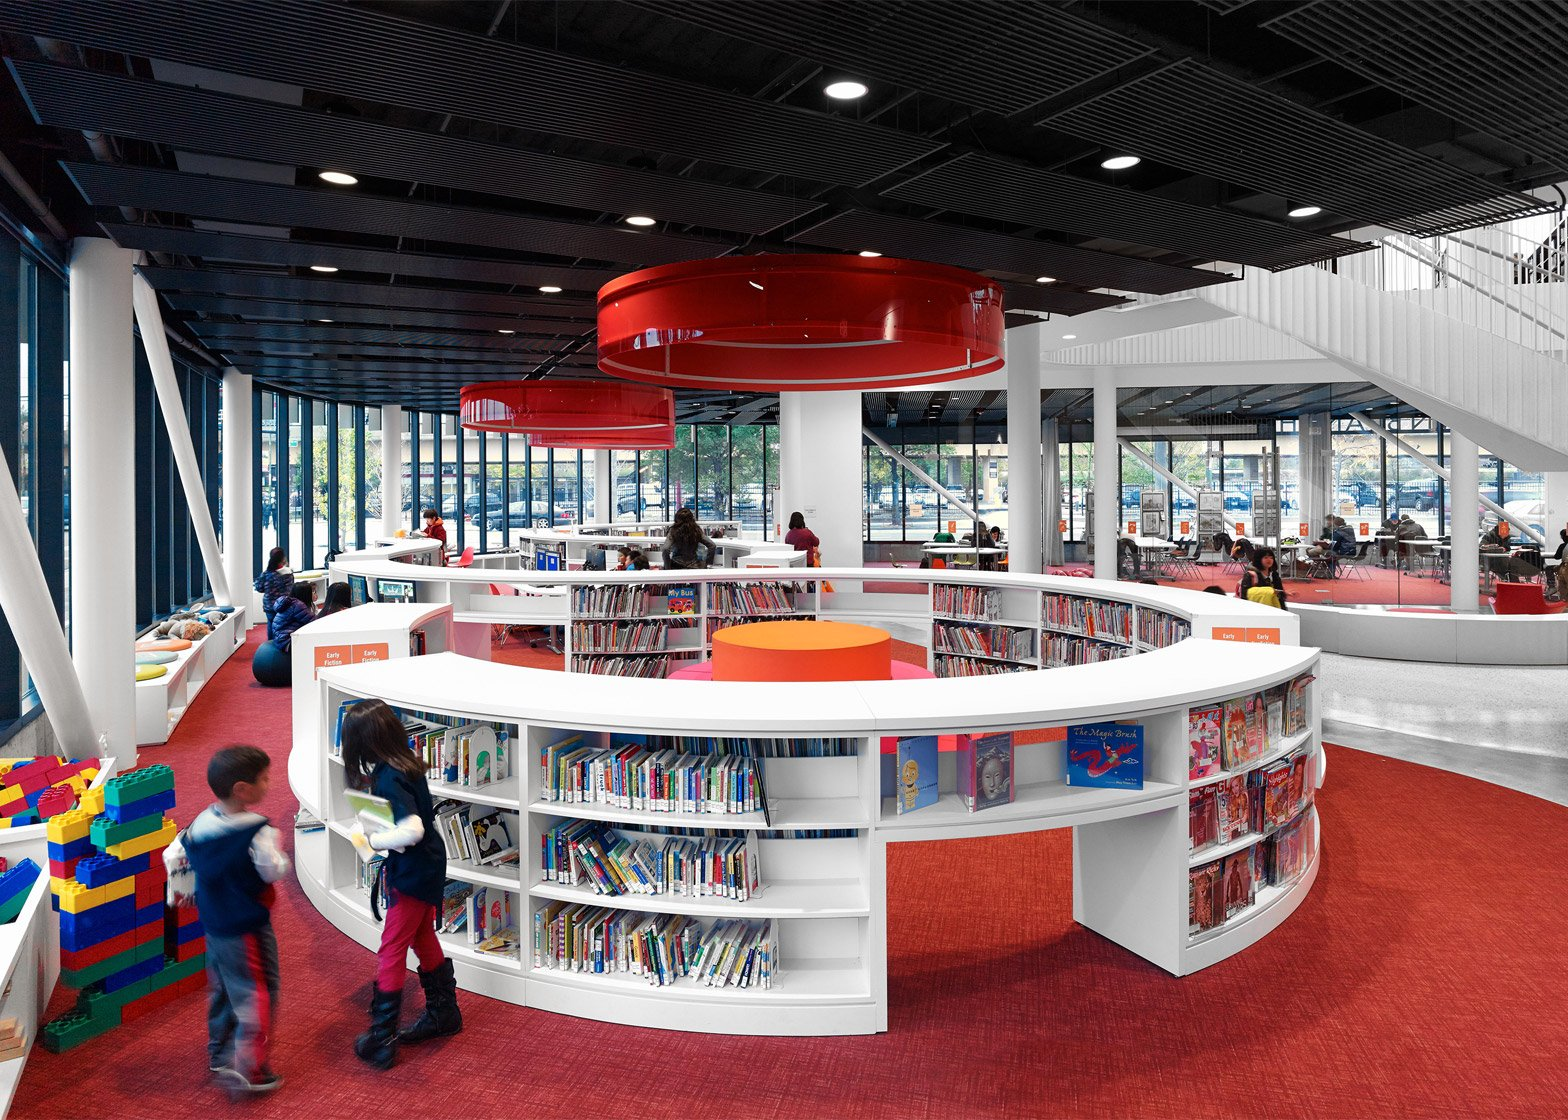 Chicago Chinatown Library by SOM